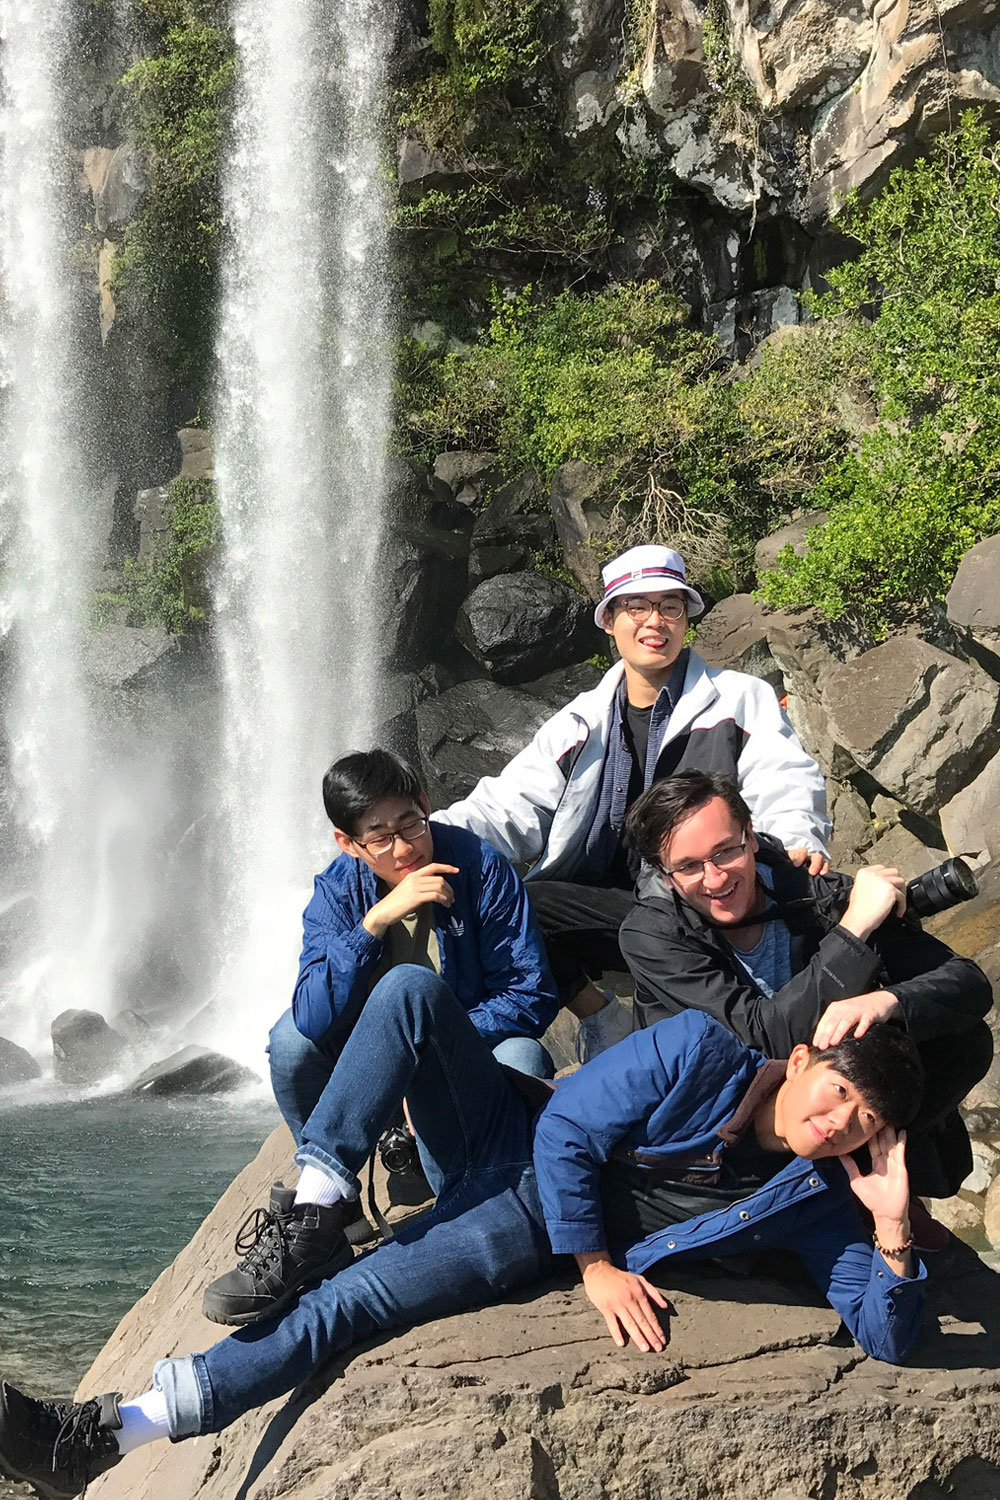 Four friends posing for a photo near a waterfall in Korea.